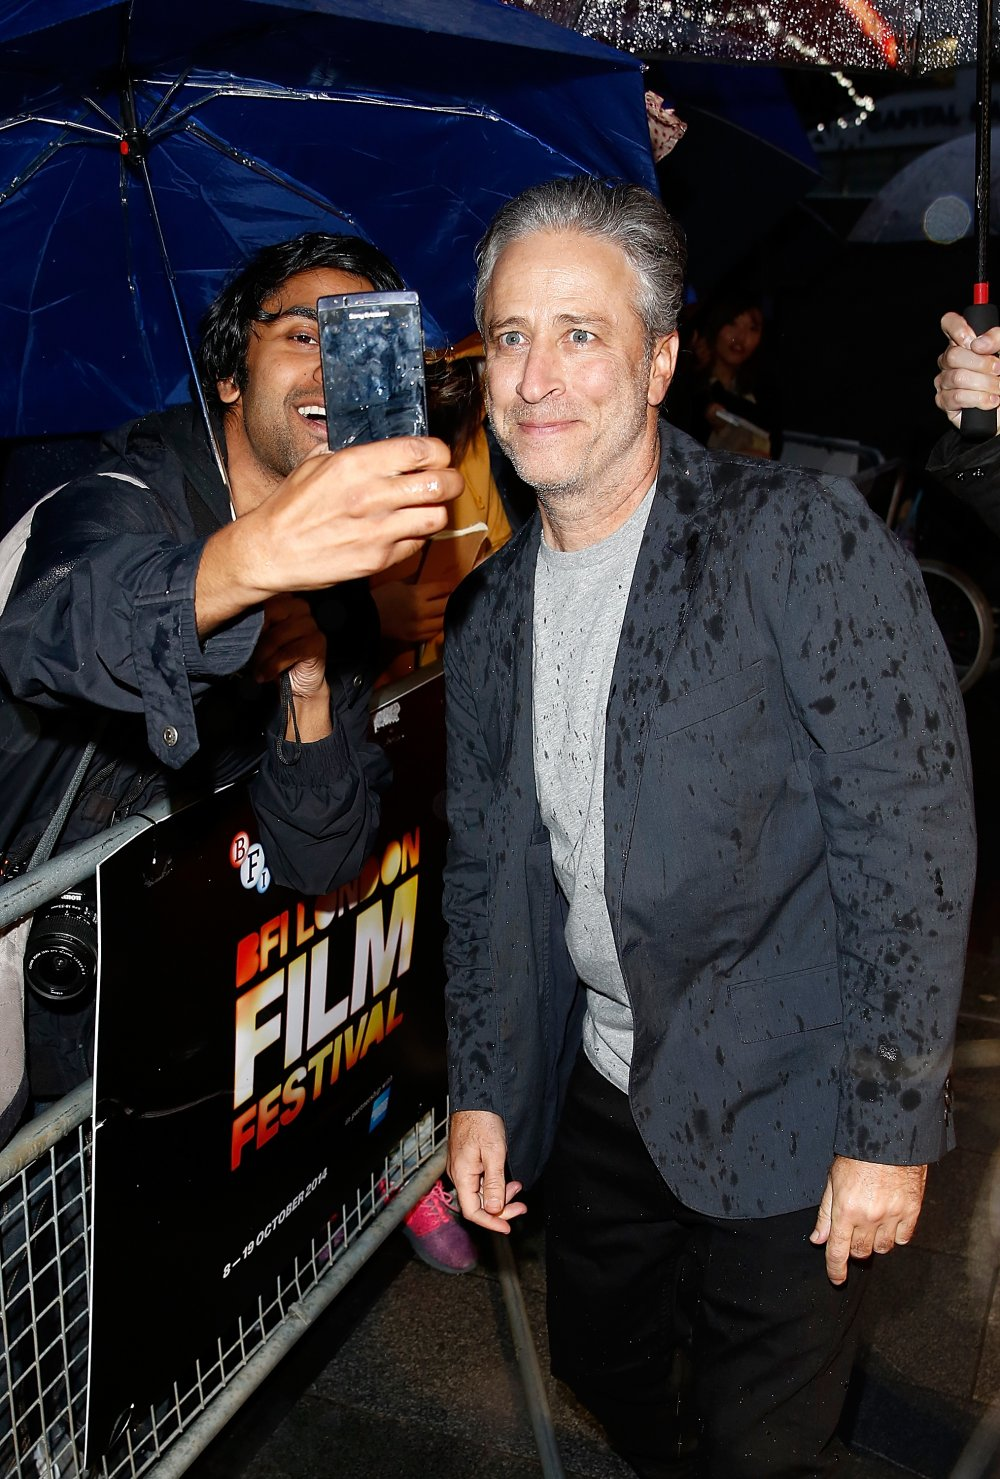 Jon Stewart on the red carpet for Rosewater at the 58th BFI London Film Festival